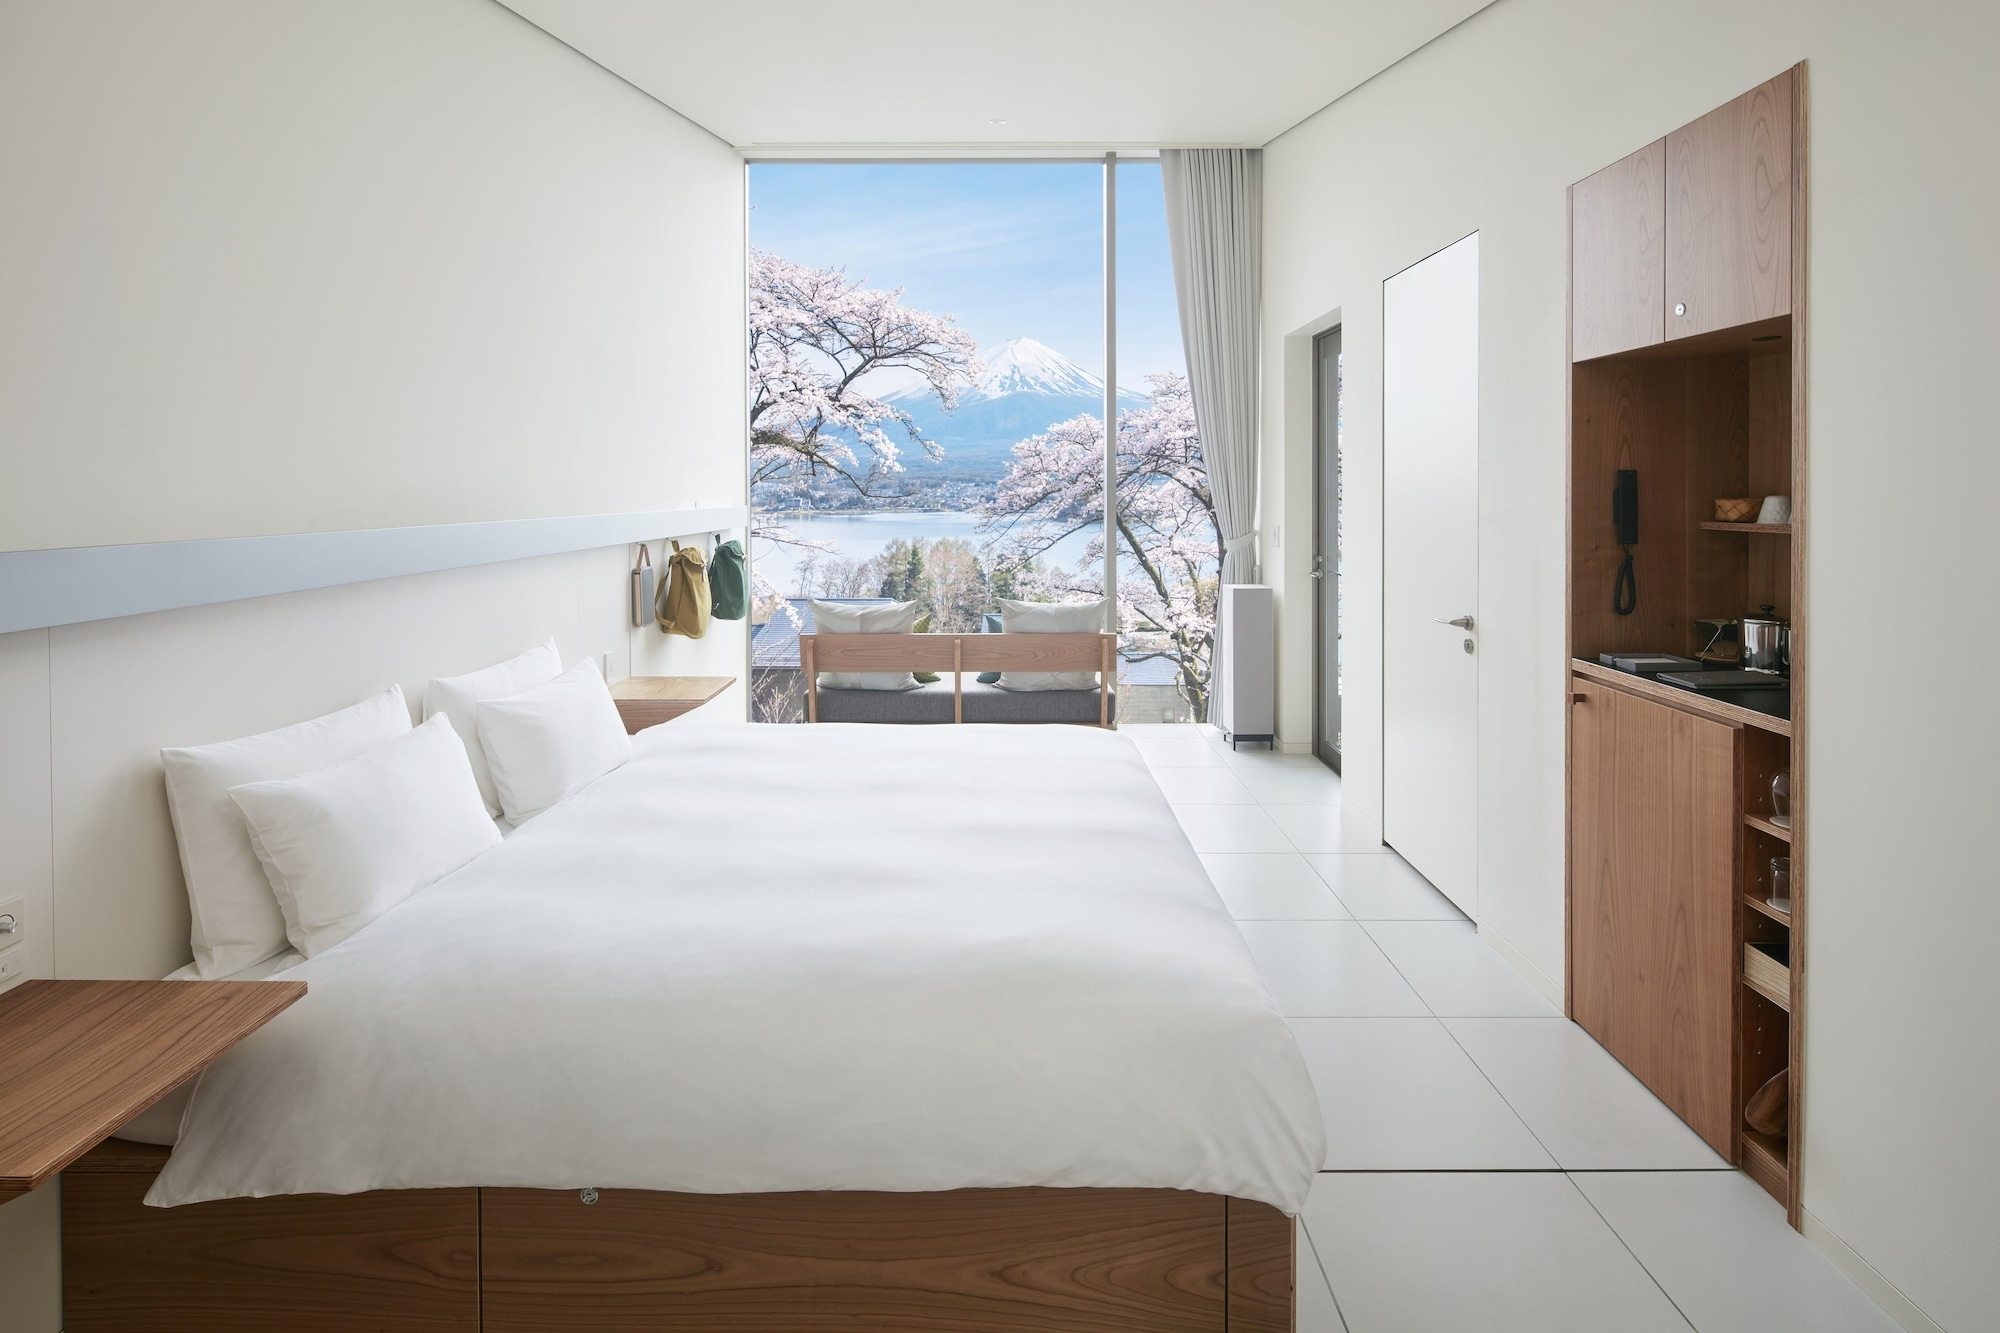 King size bed room with mountain view